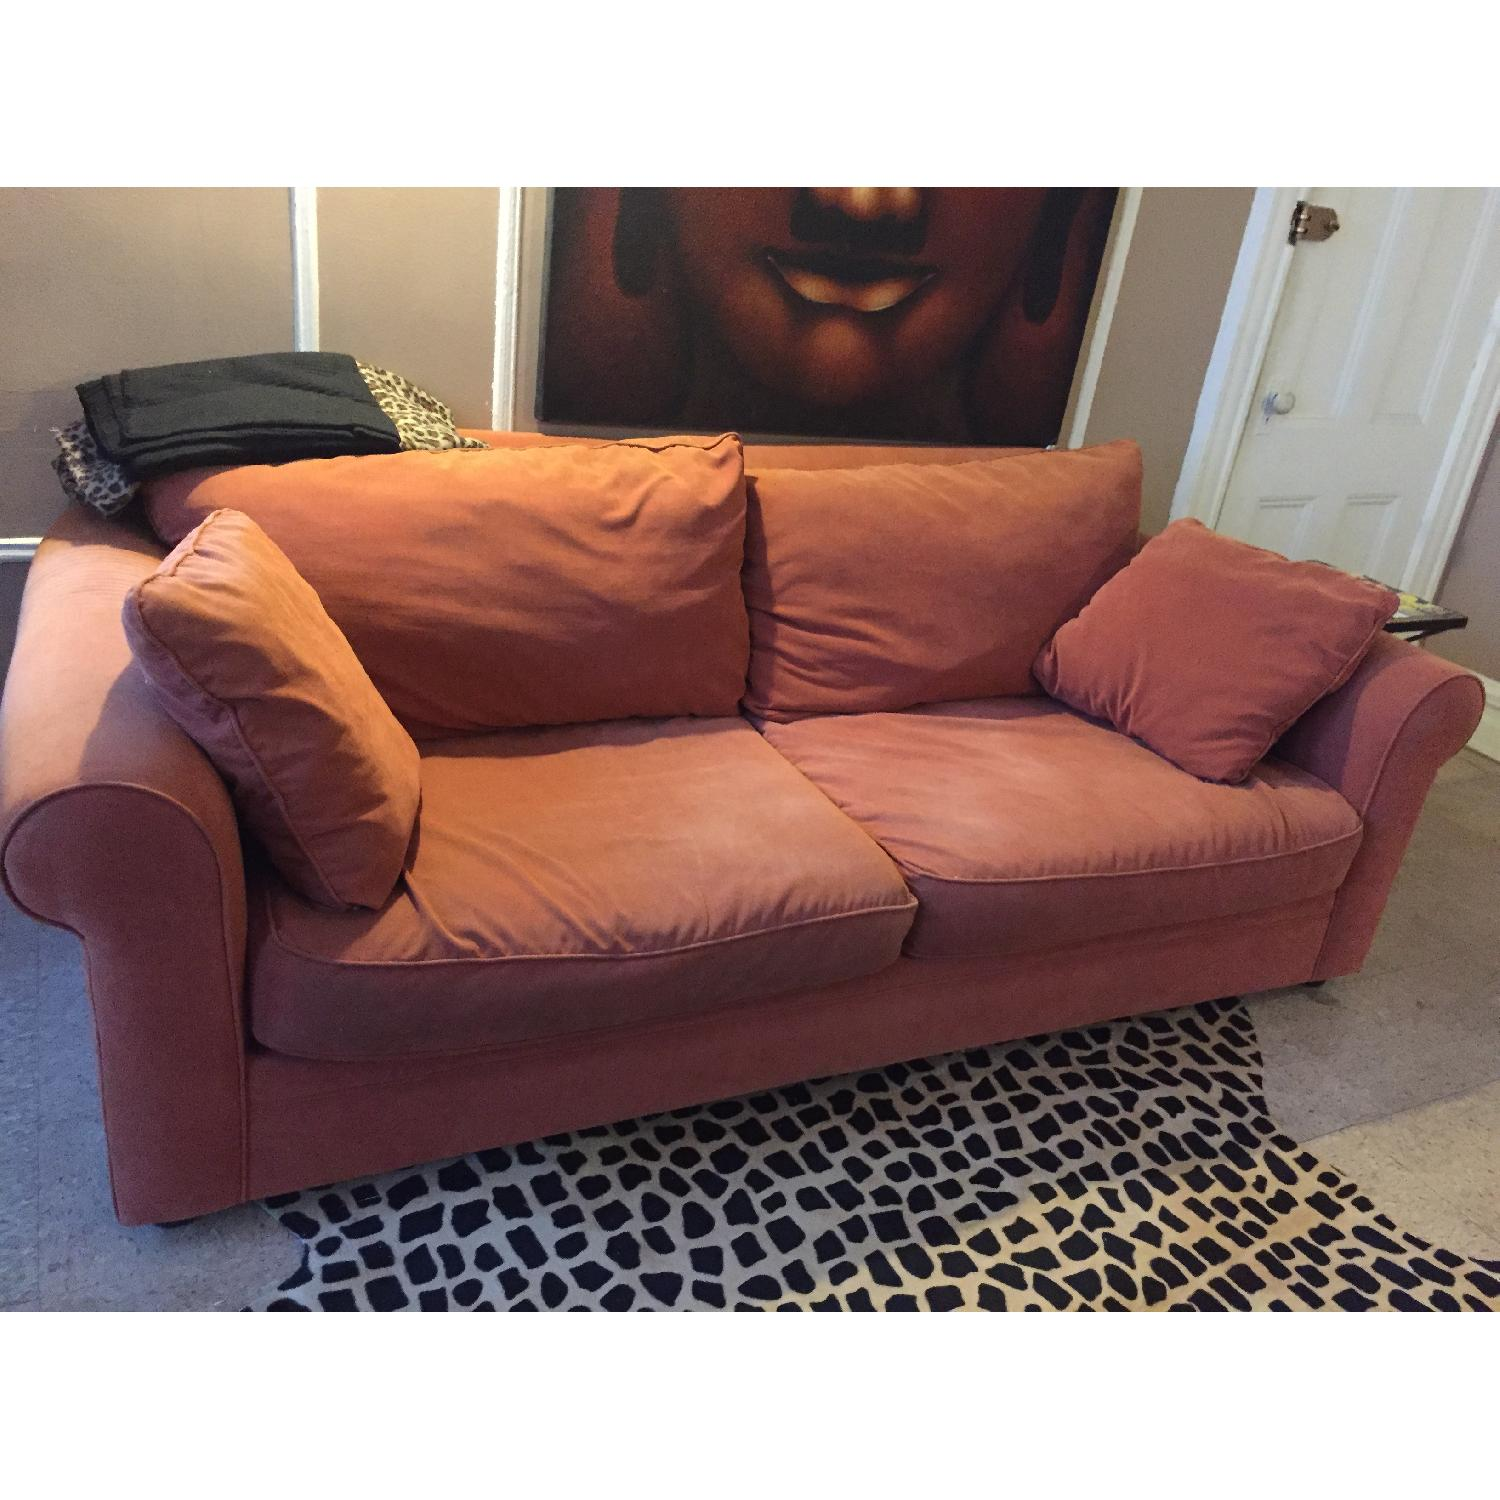 Orange Microsuede Couch - image-0